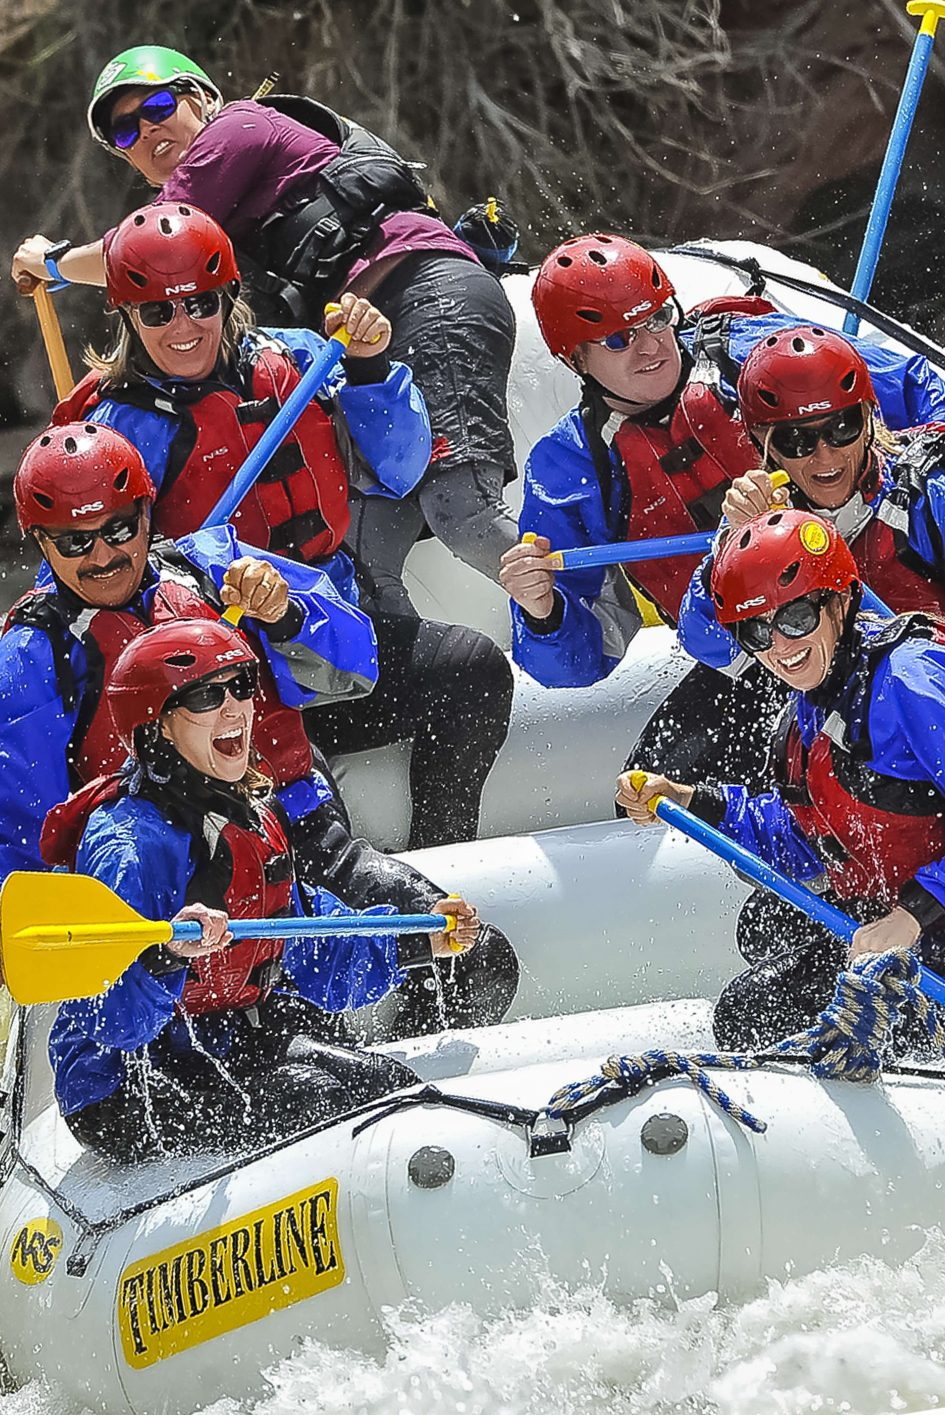 WhiteWater-Pix 2016 River Adventure Photography Image